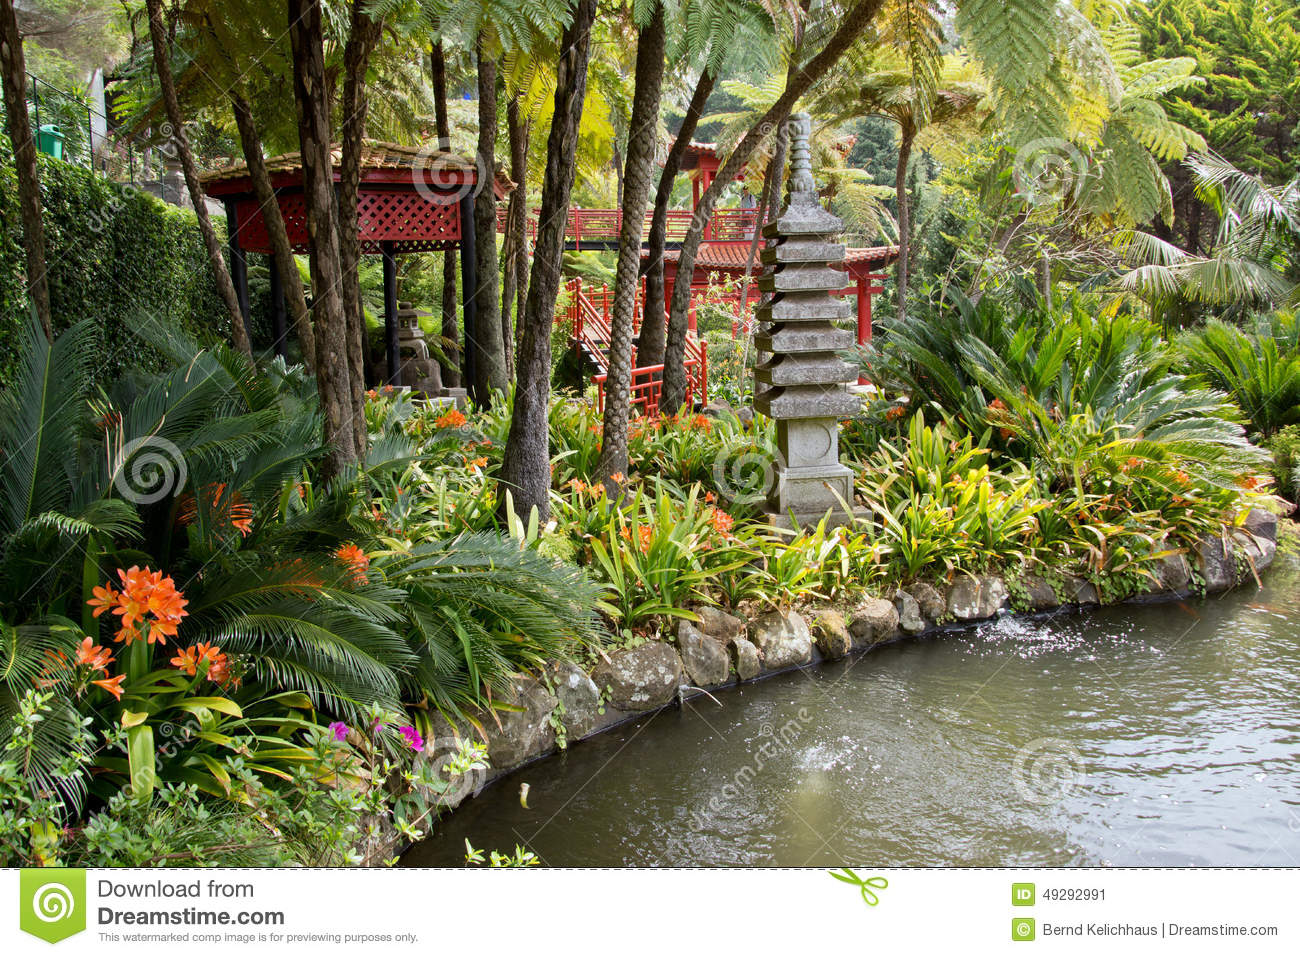 Jardins tropicaux en monte palace photo stock image for Jardins tropicaux contemporains